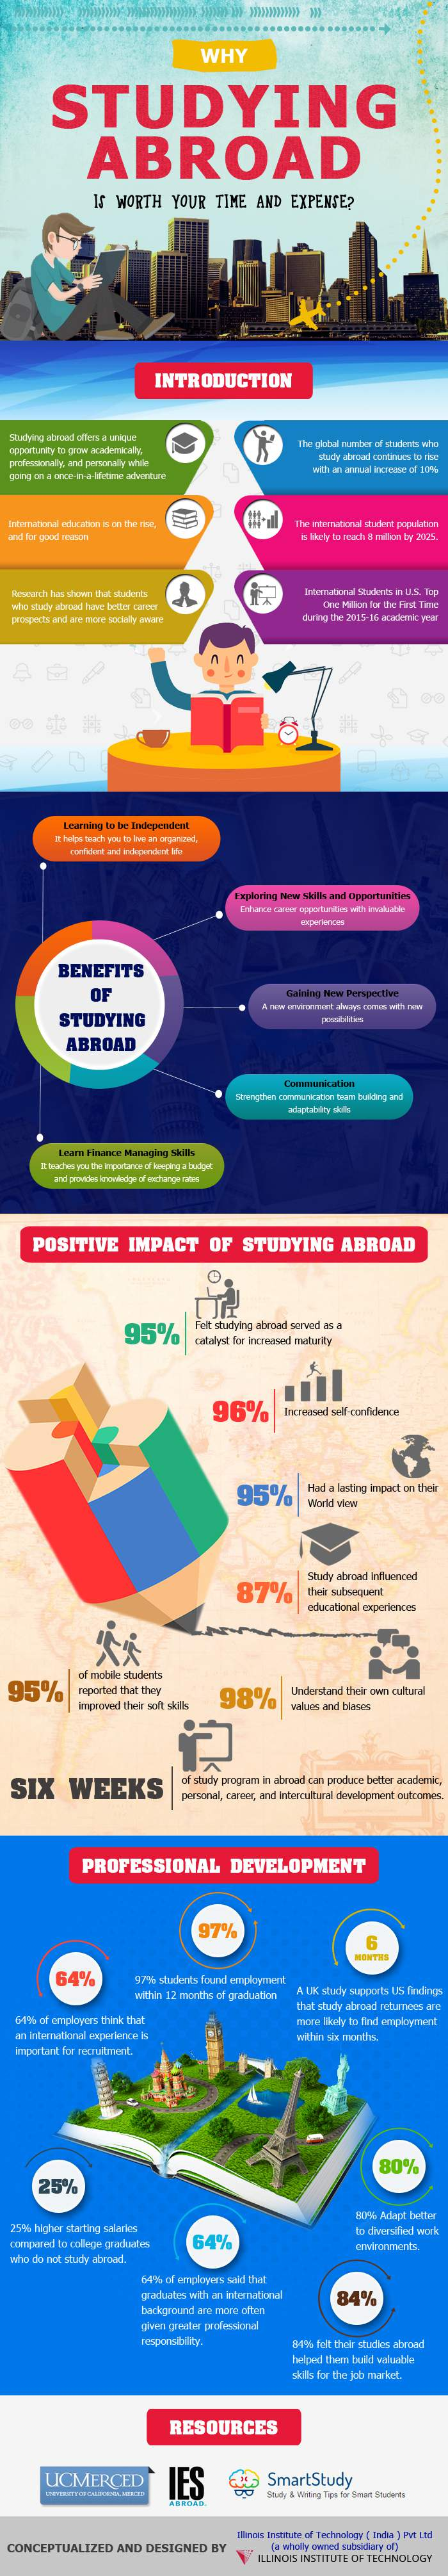 the benefits of study abroad Studying abroad in a foreign country can be downright scary you don't know the people, you don't know the language, and you certainly don't know the area but regardless of all the unknowns, the experience will undoubtedly be life changing.